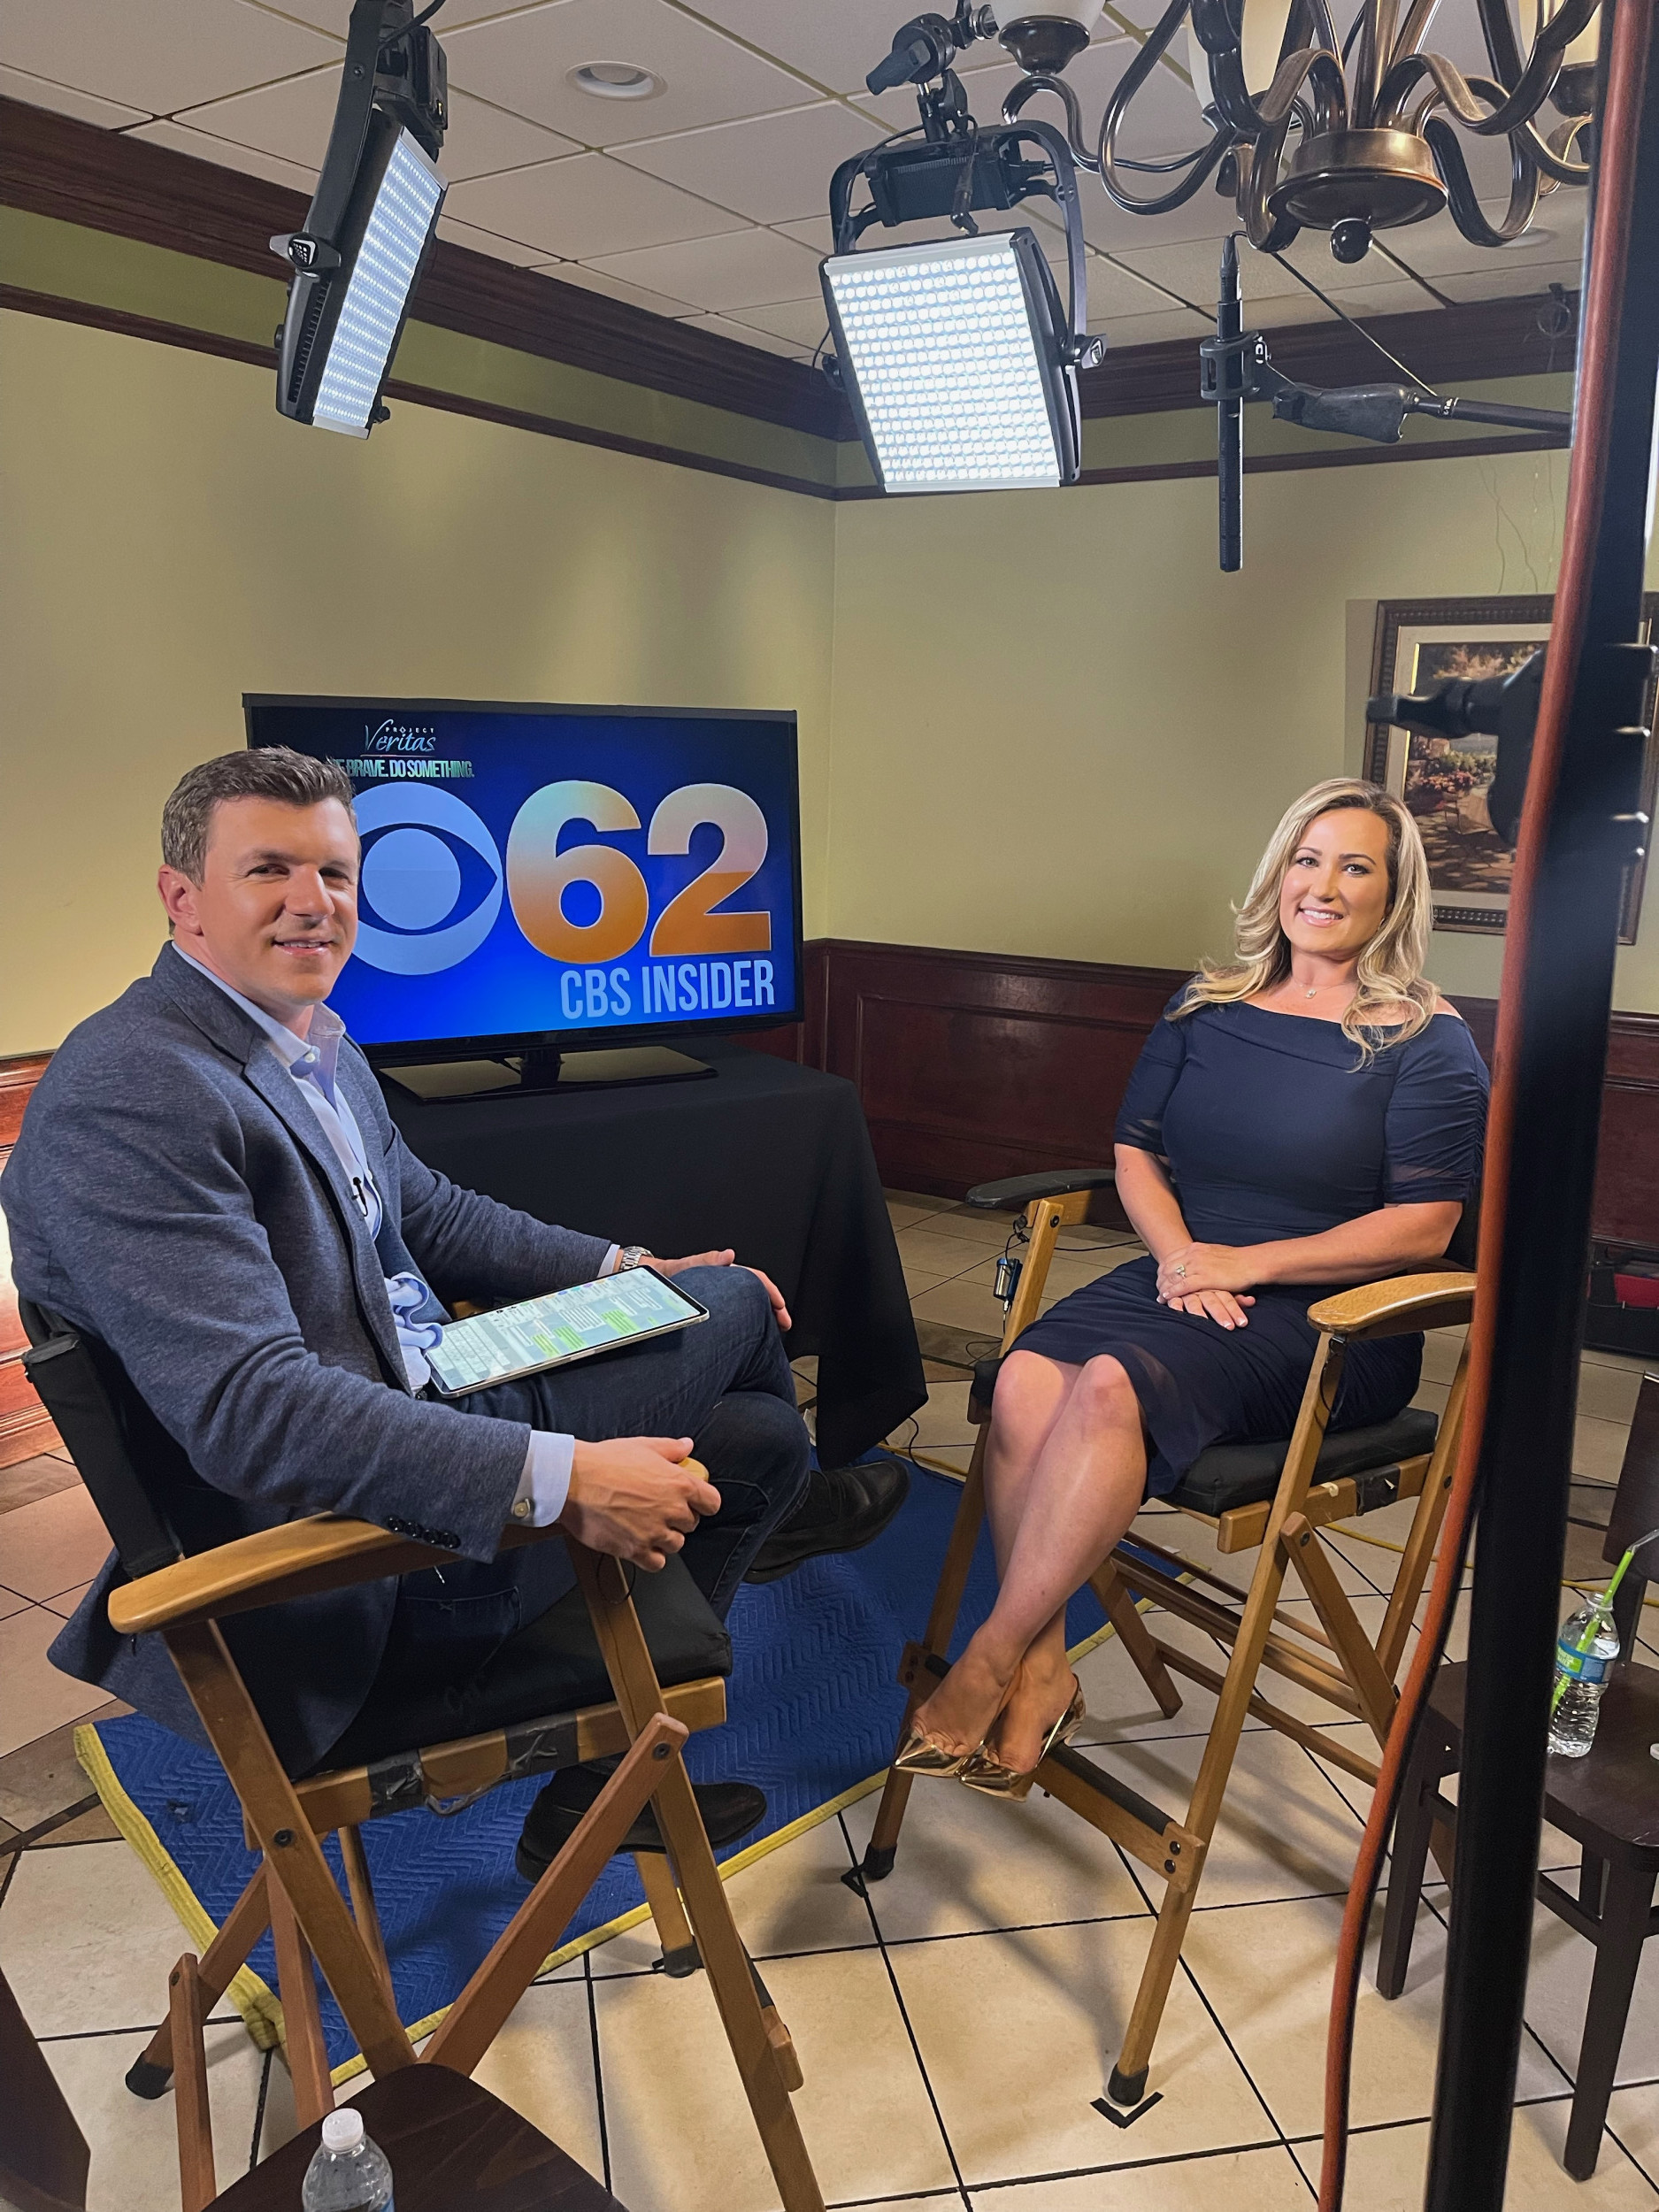 April Moss interrupted her weather report at CBS 62 in Detroit to announce she has teamed up with James O'Keefe and Project Veritas to blow the whistle on what she alleges is discrimination at CBS News.